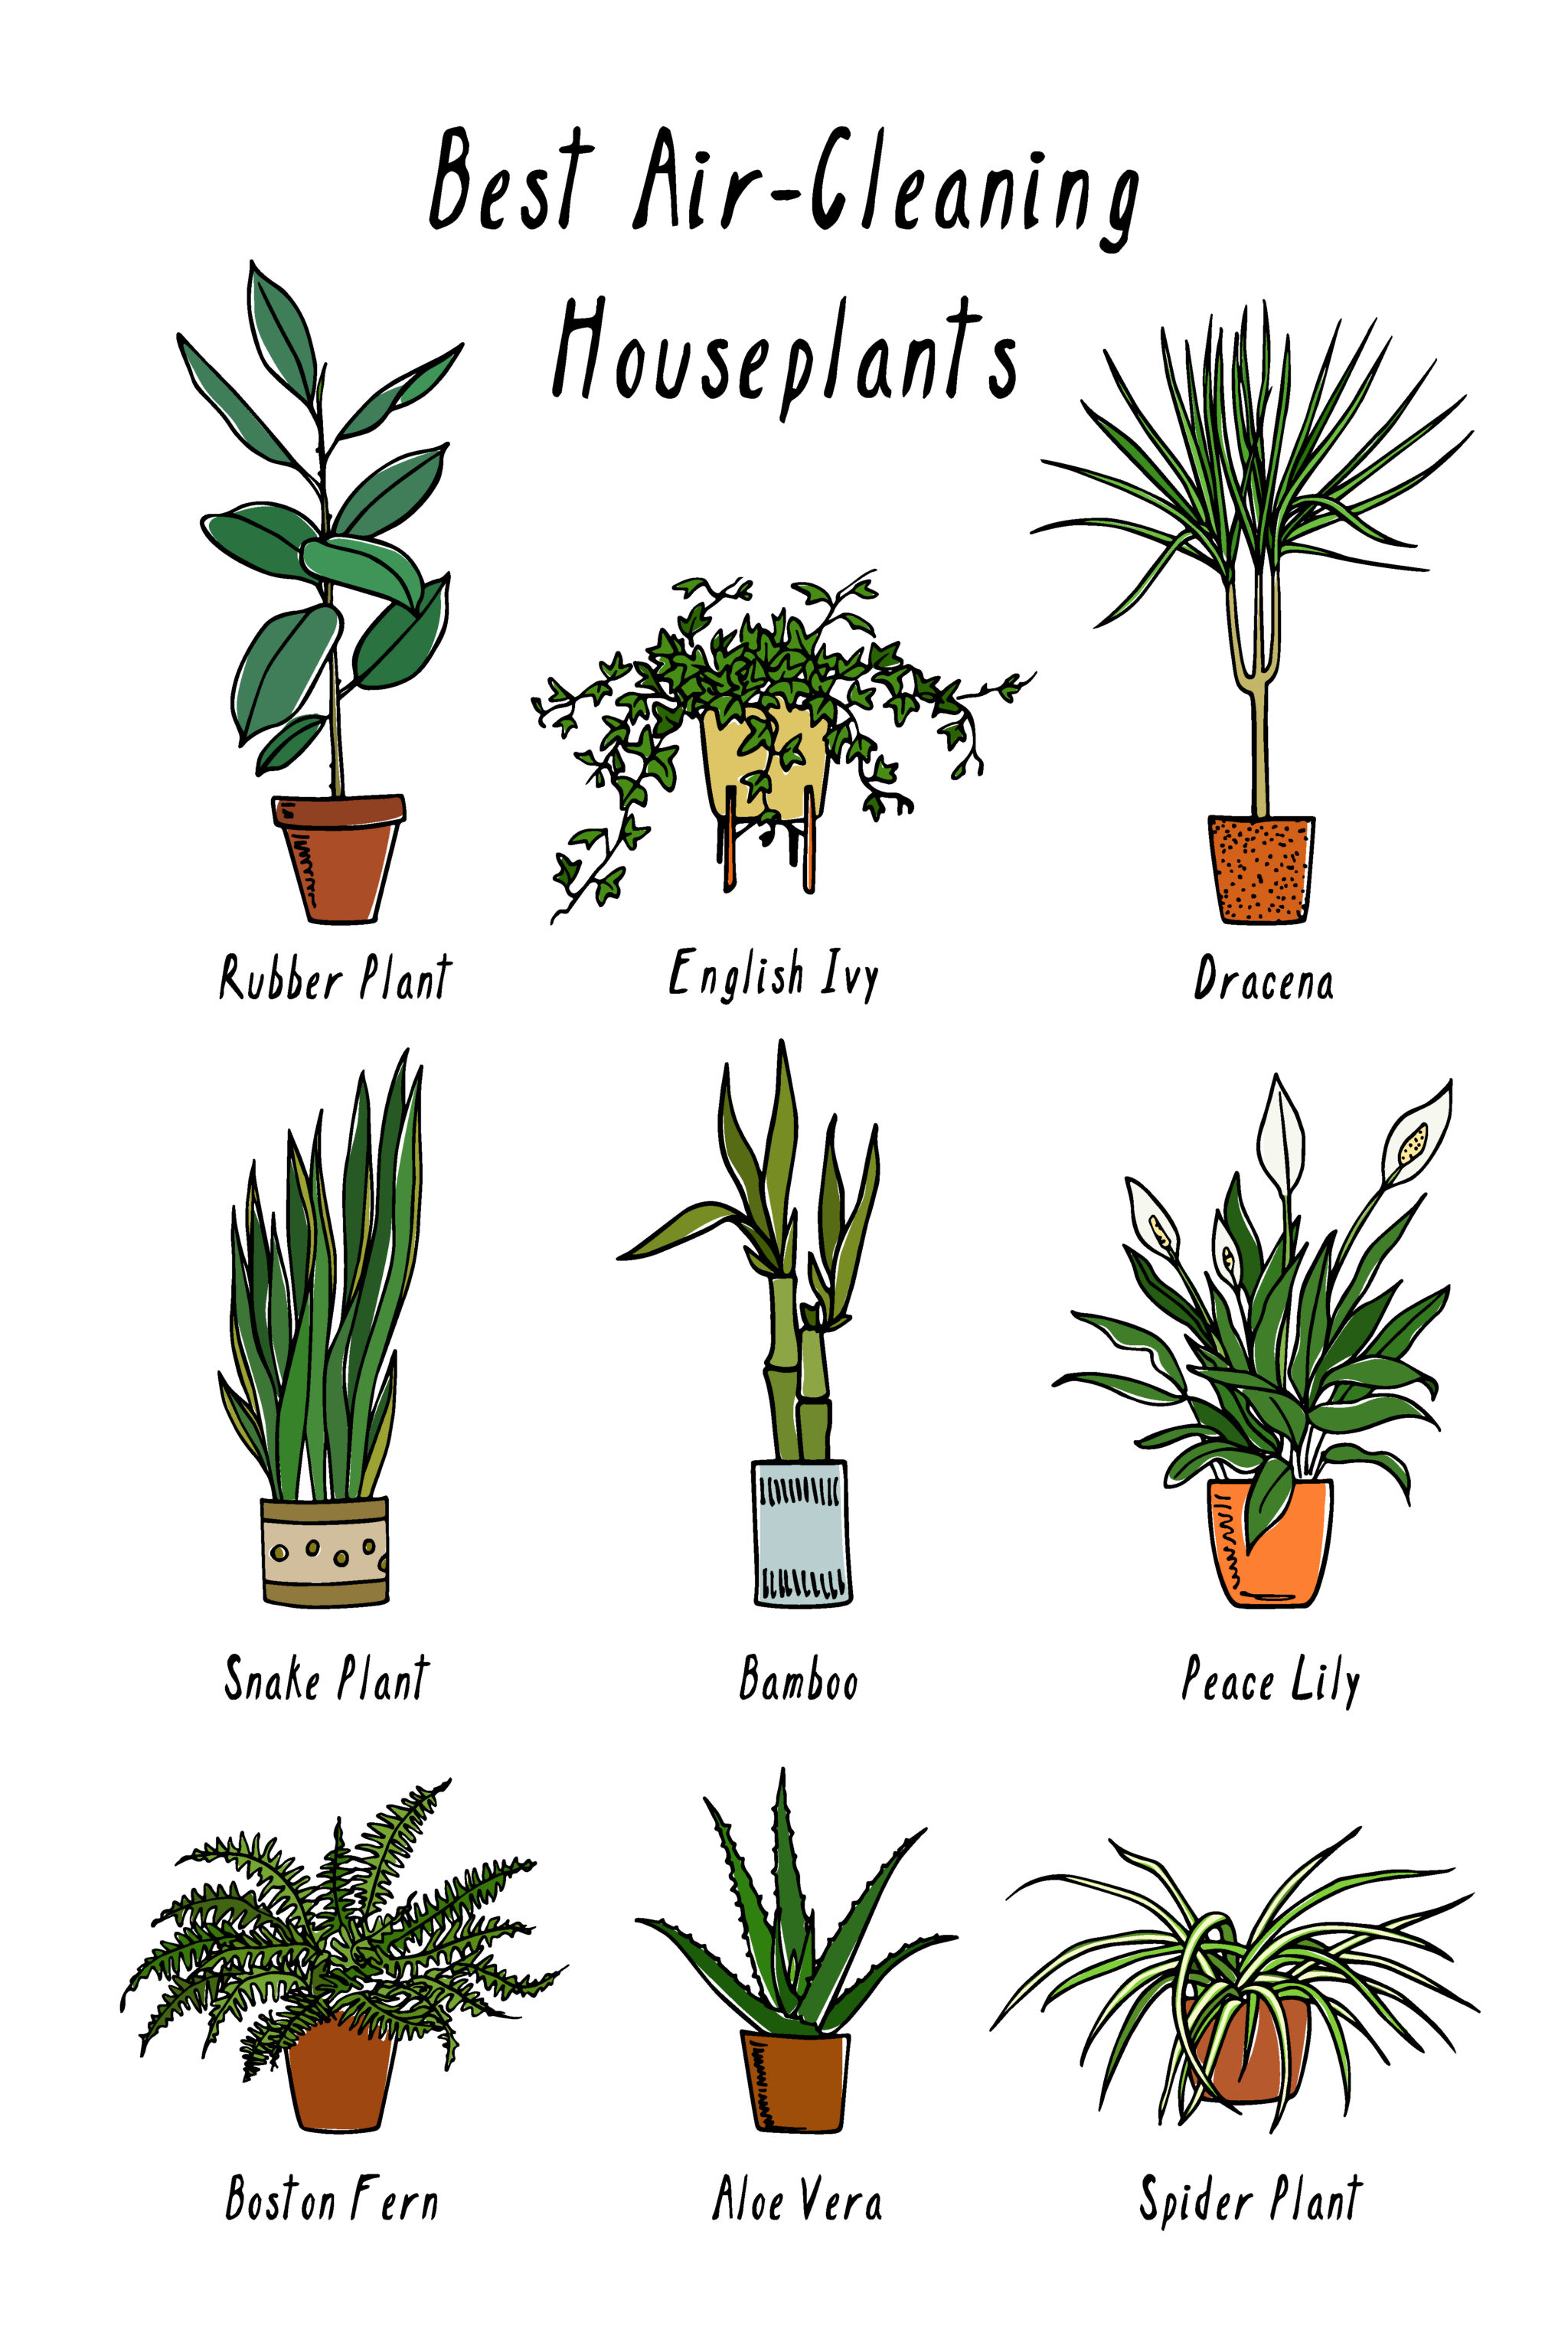 Can plants clean your indoor air? Not really.